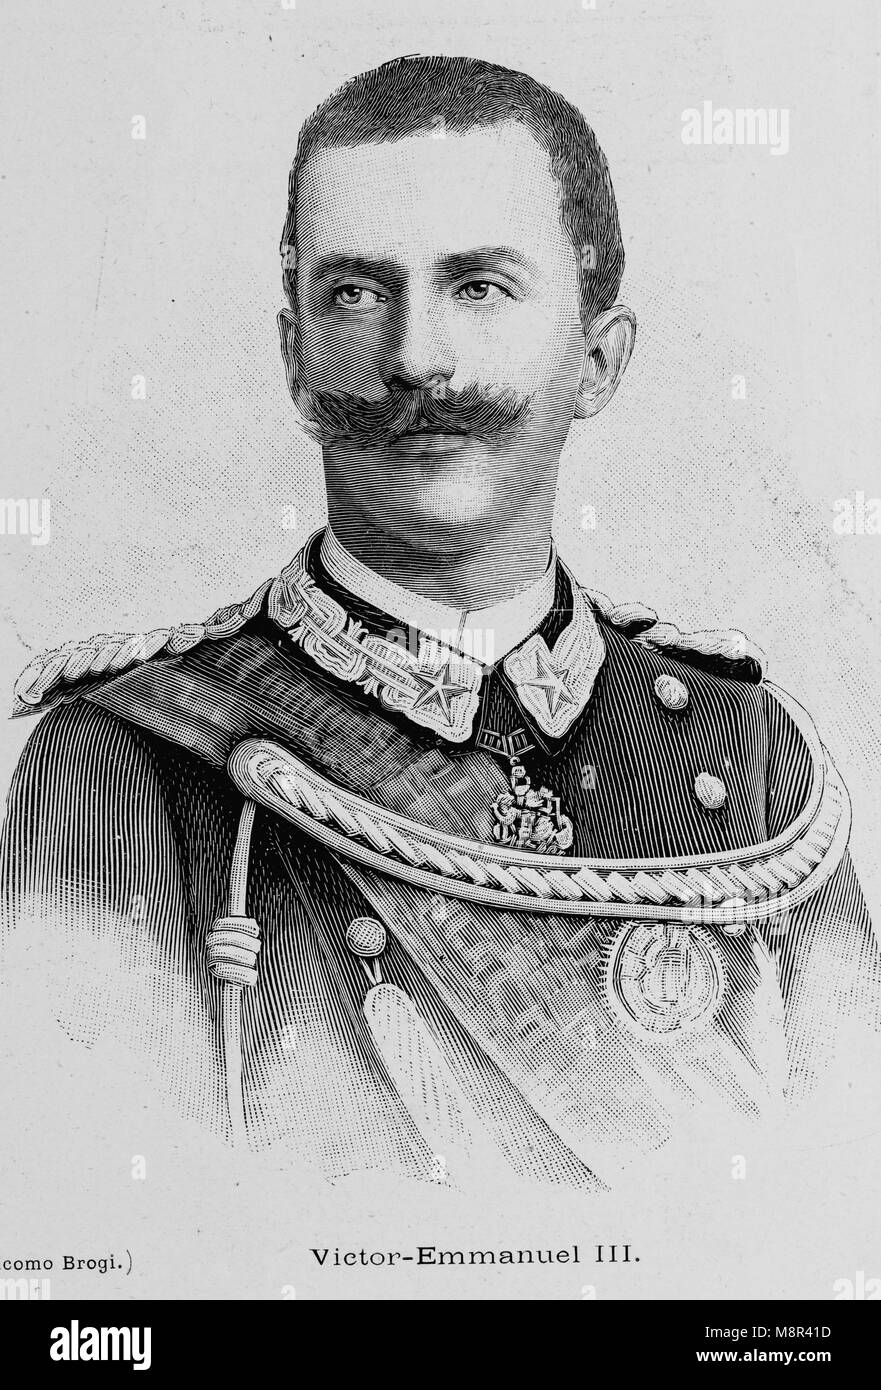 King Victor Emmanuel III of Italy, Picture from the French weekly newspaper l'Illustration, 4th August 1900 - Stock Image